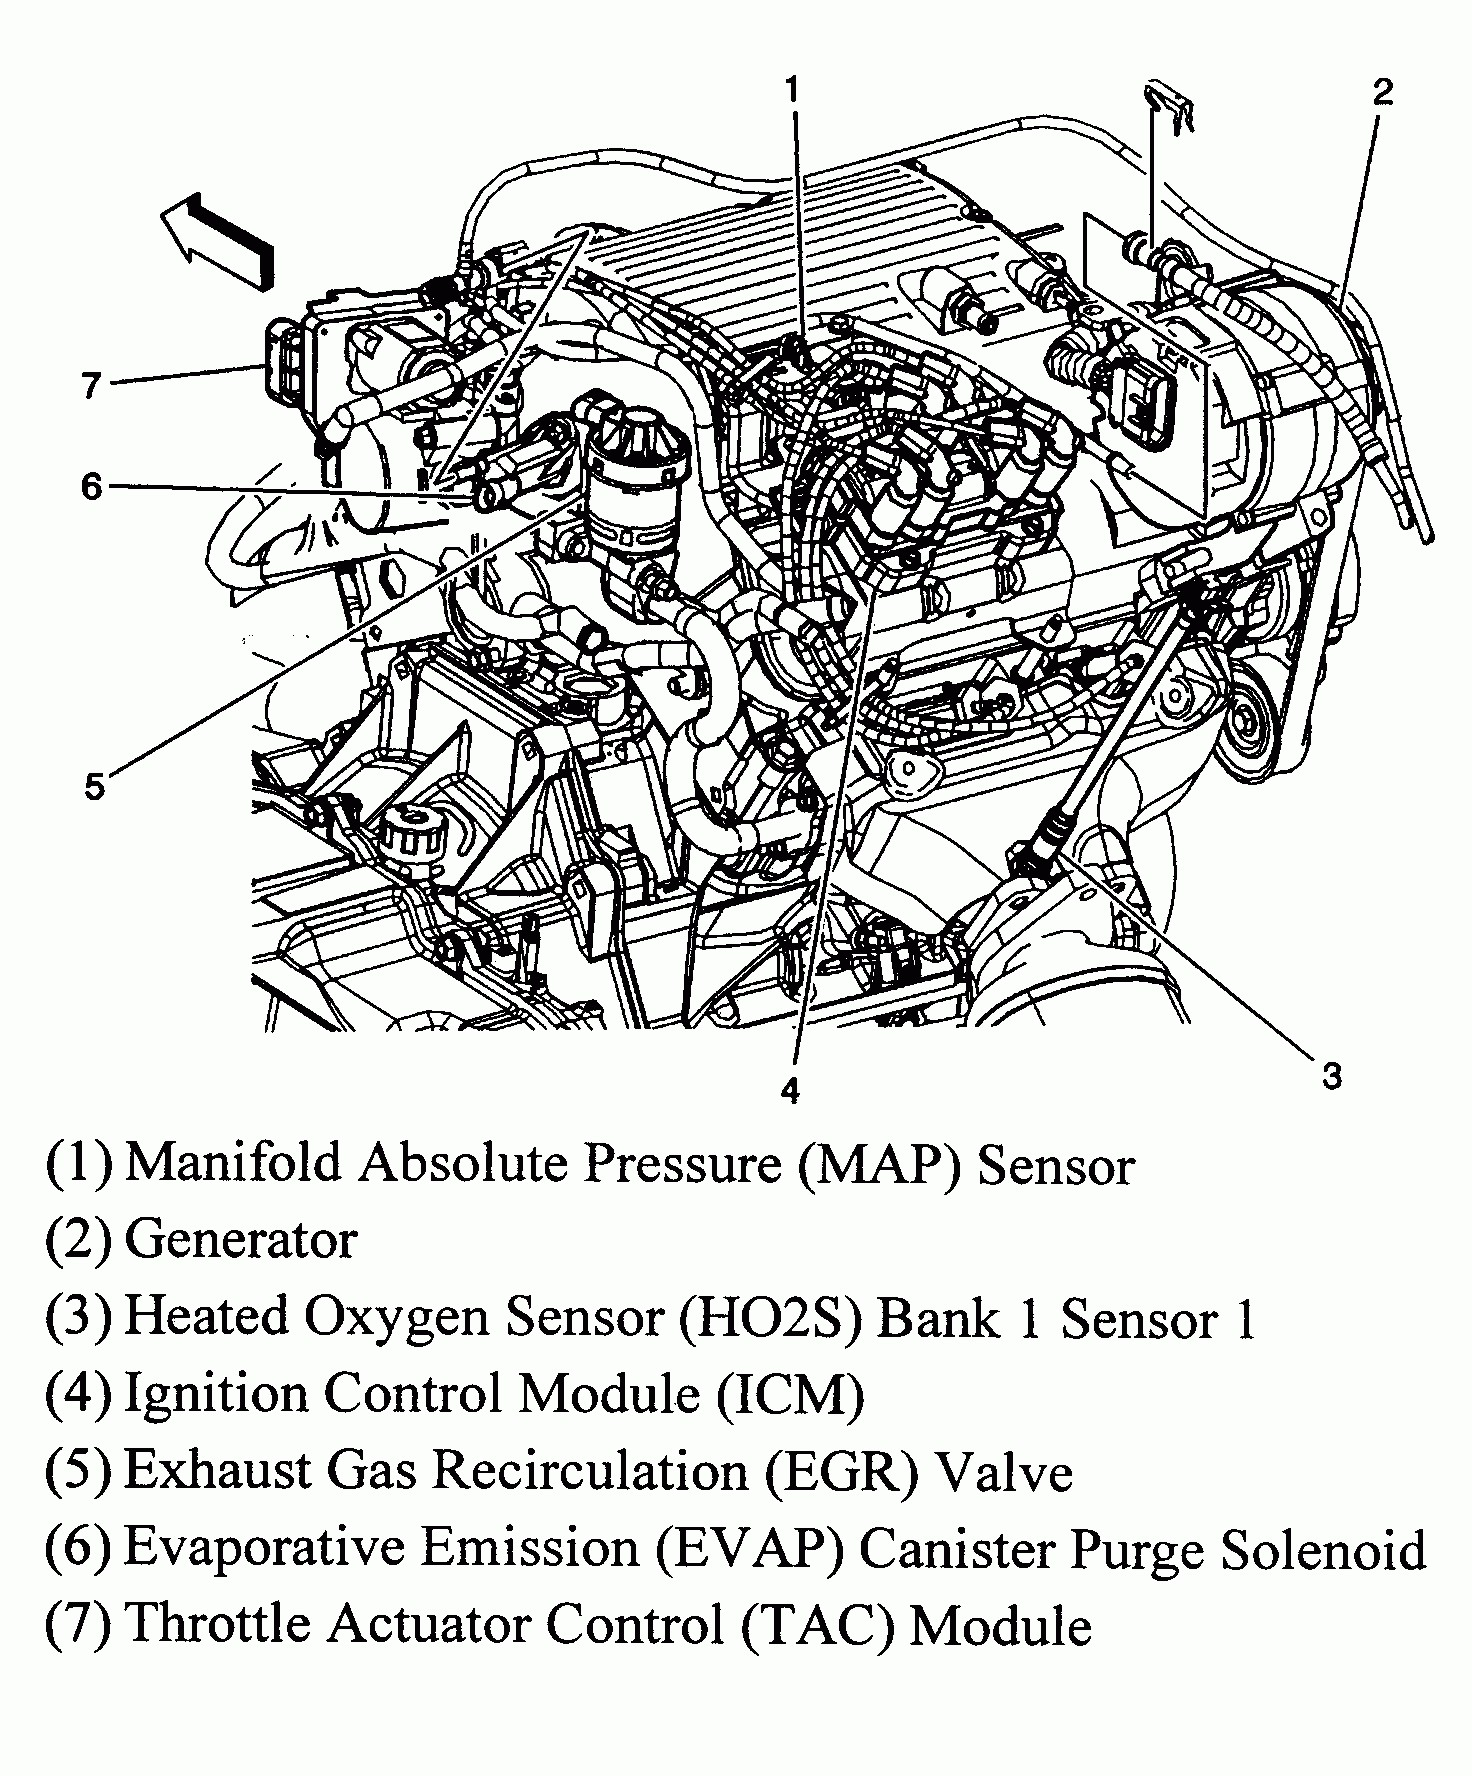 hight resolution of pontiac 3400 engine diagram 2006 pontiac g6 front suspension diagram pontiac g6 diagram for serpentine belt